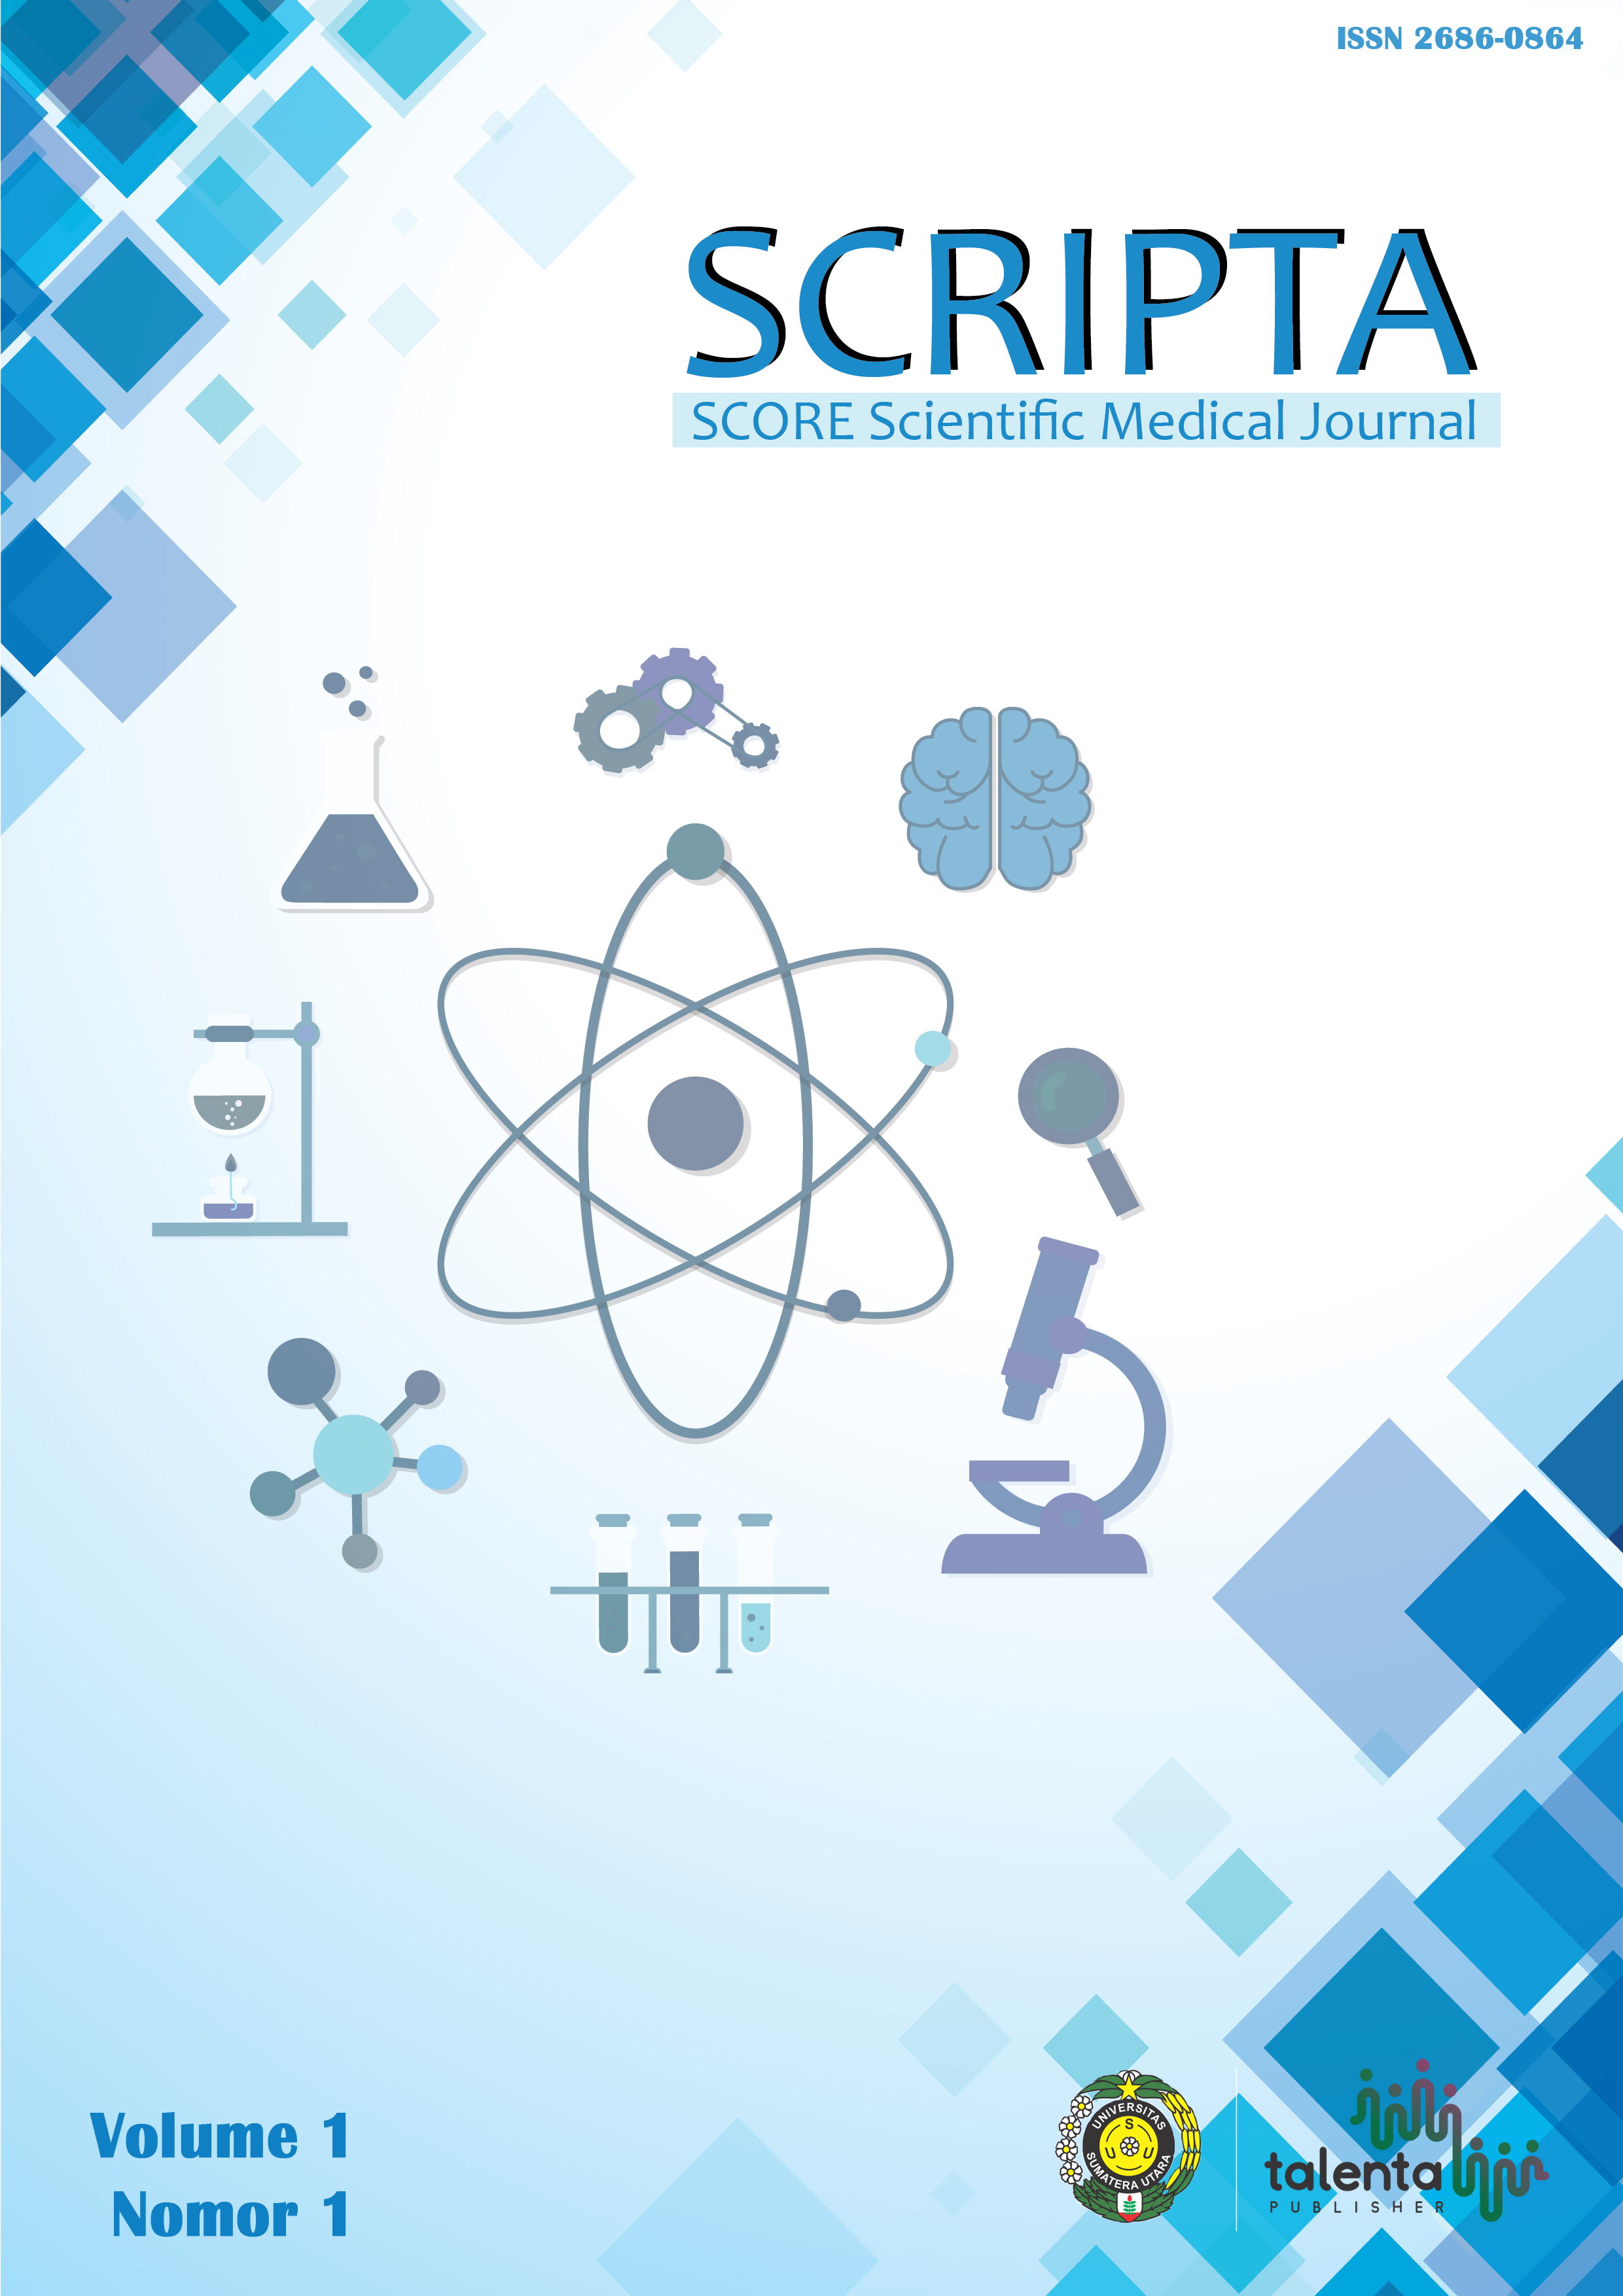 Cover of SCRIPTA SCORE Scientific Medical Journal for Volume 1 Number 1 at August 2019